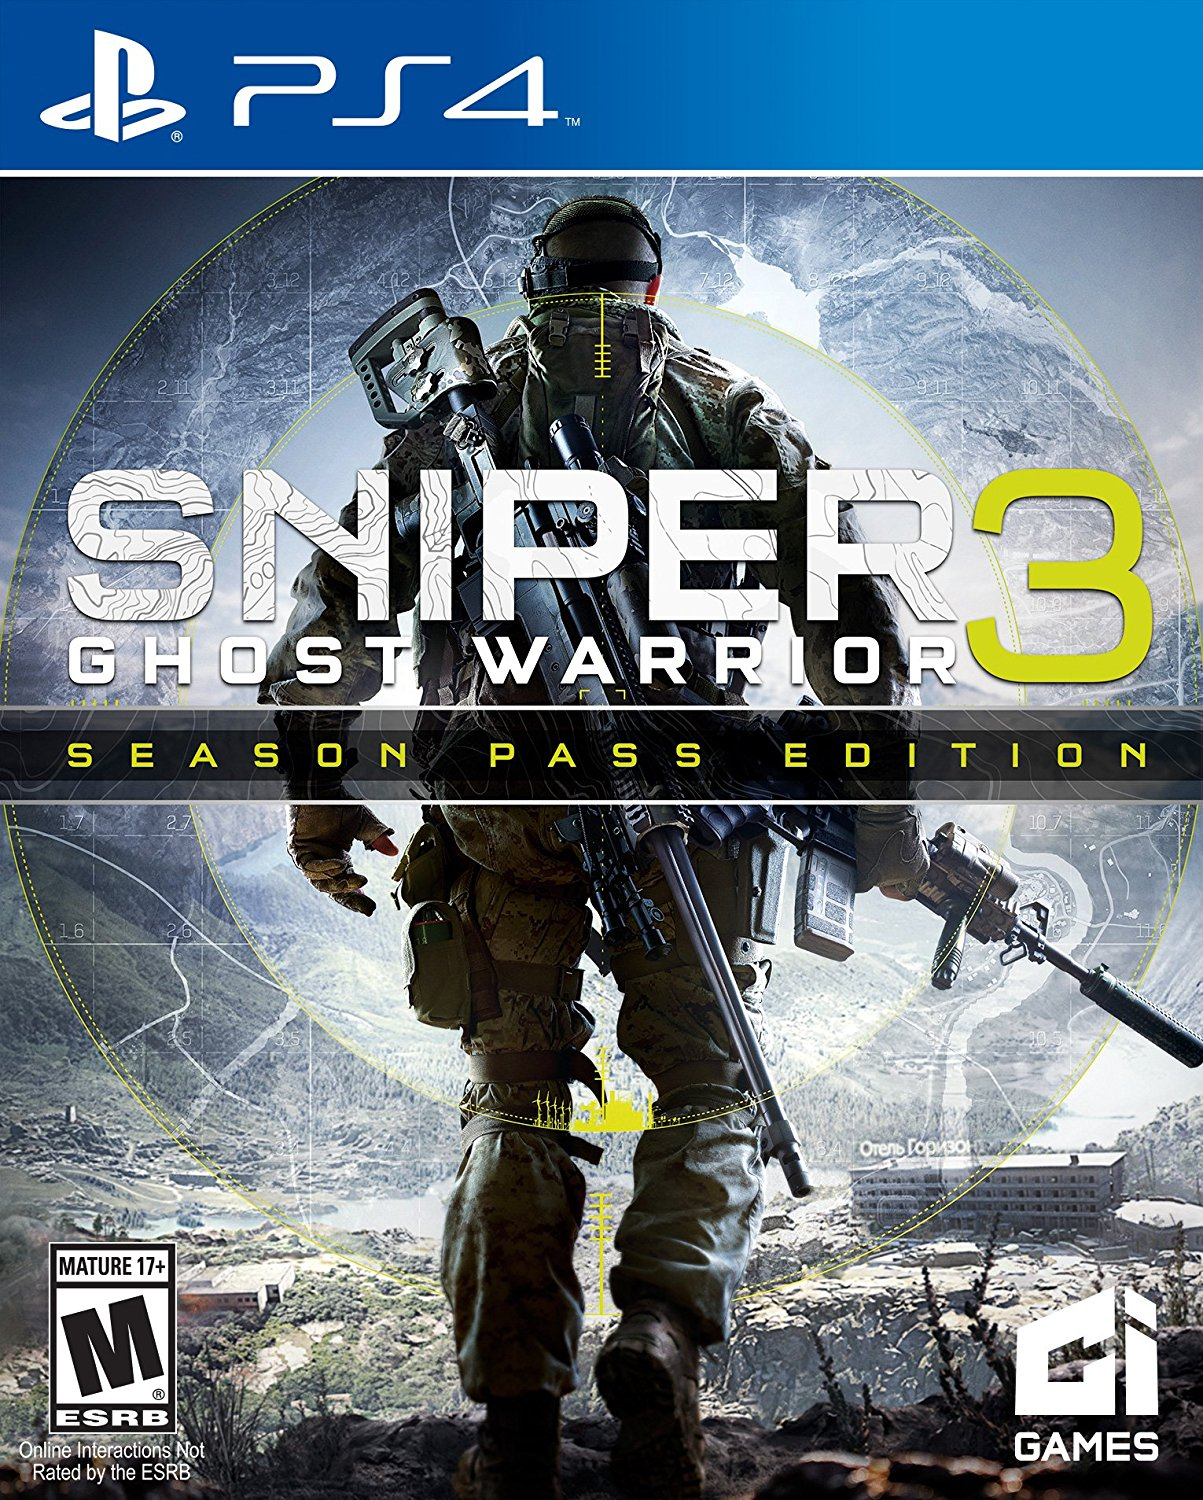 sniper-ghost-warrior-3-season-pass-edition